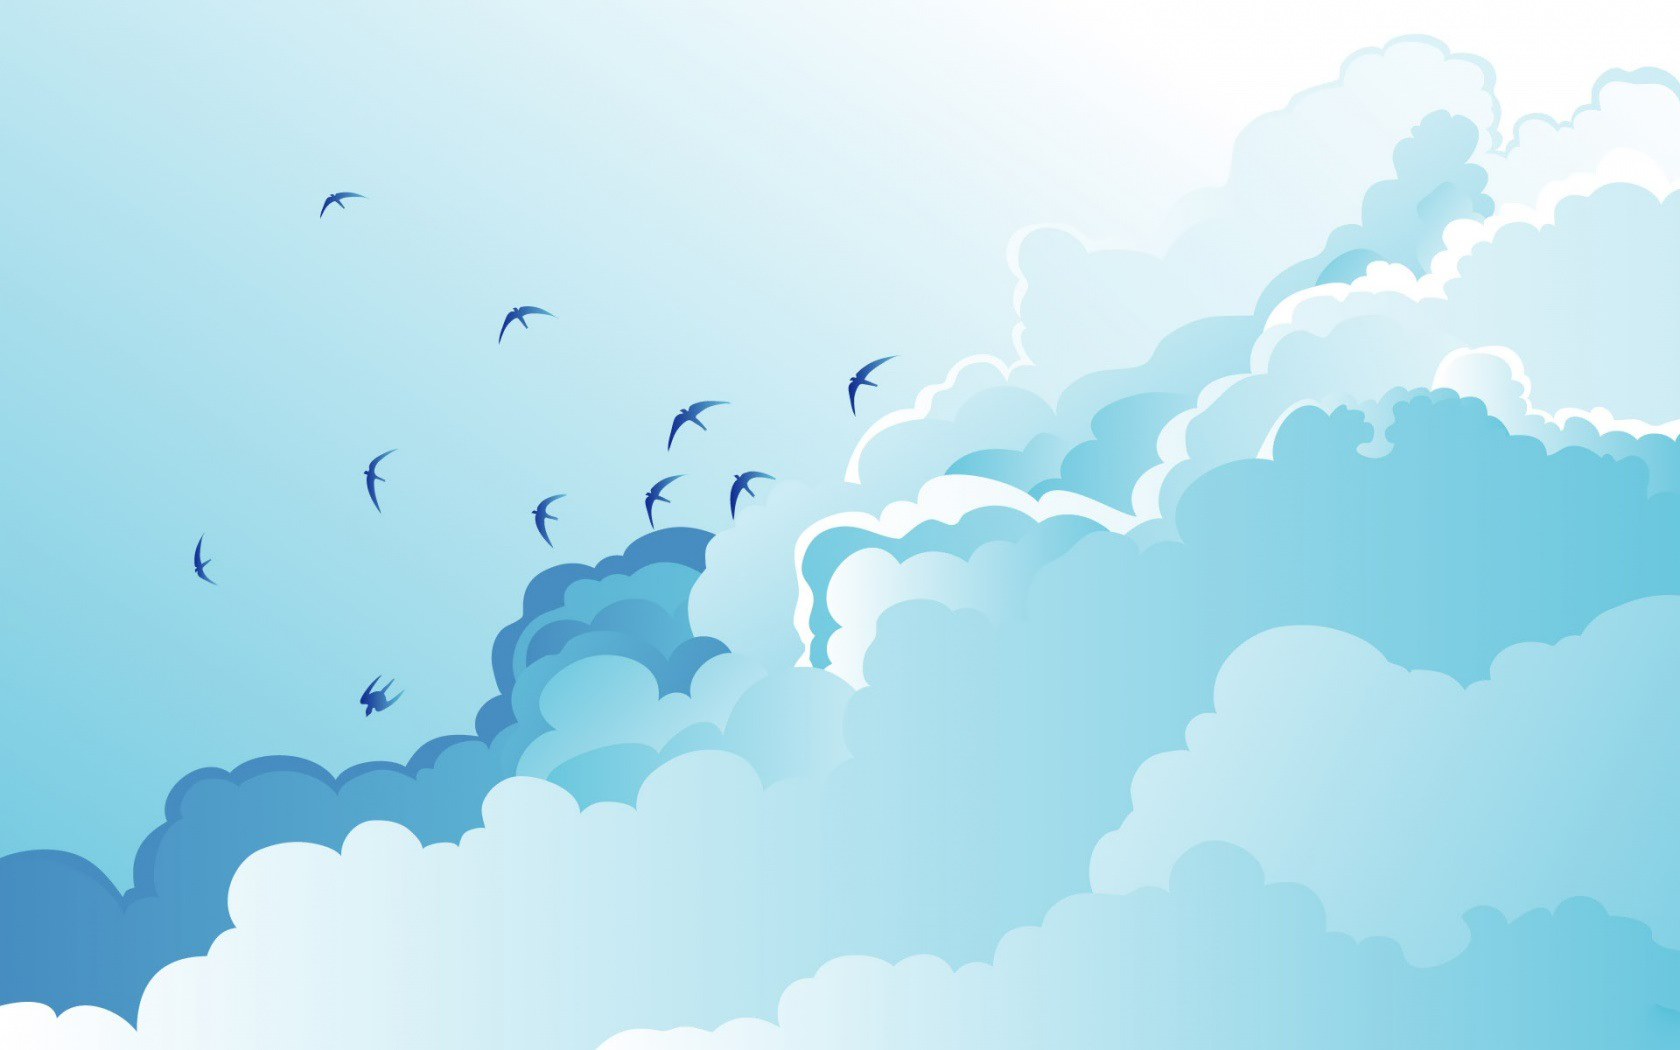 Sky clipart #15, Download drawings